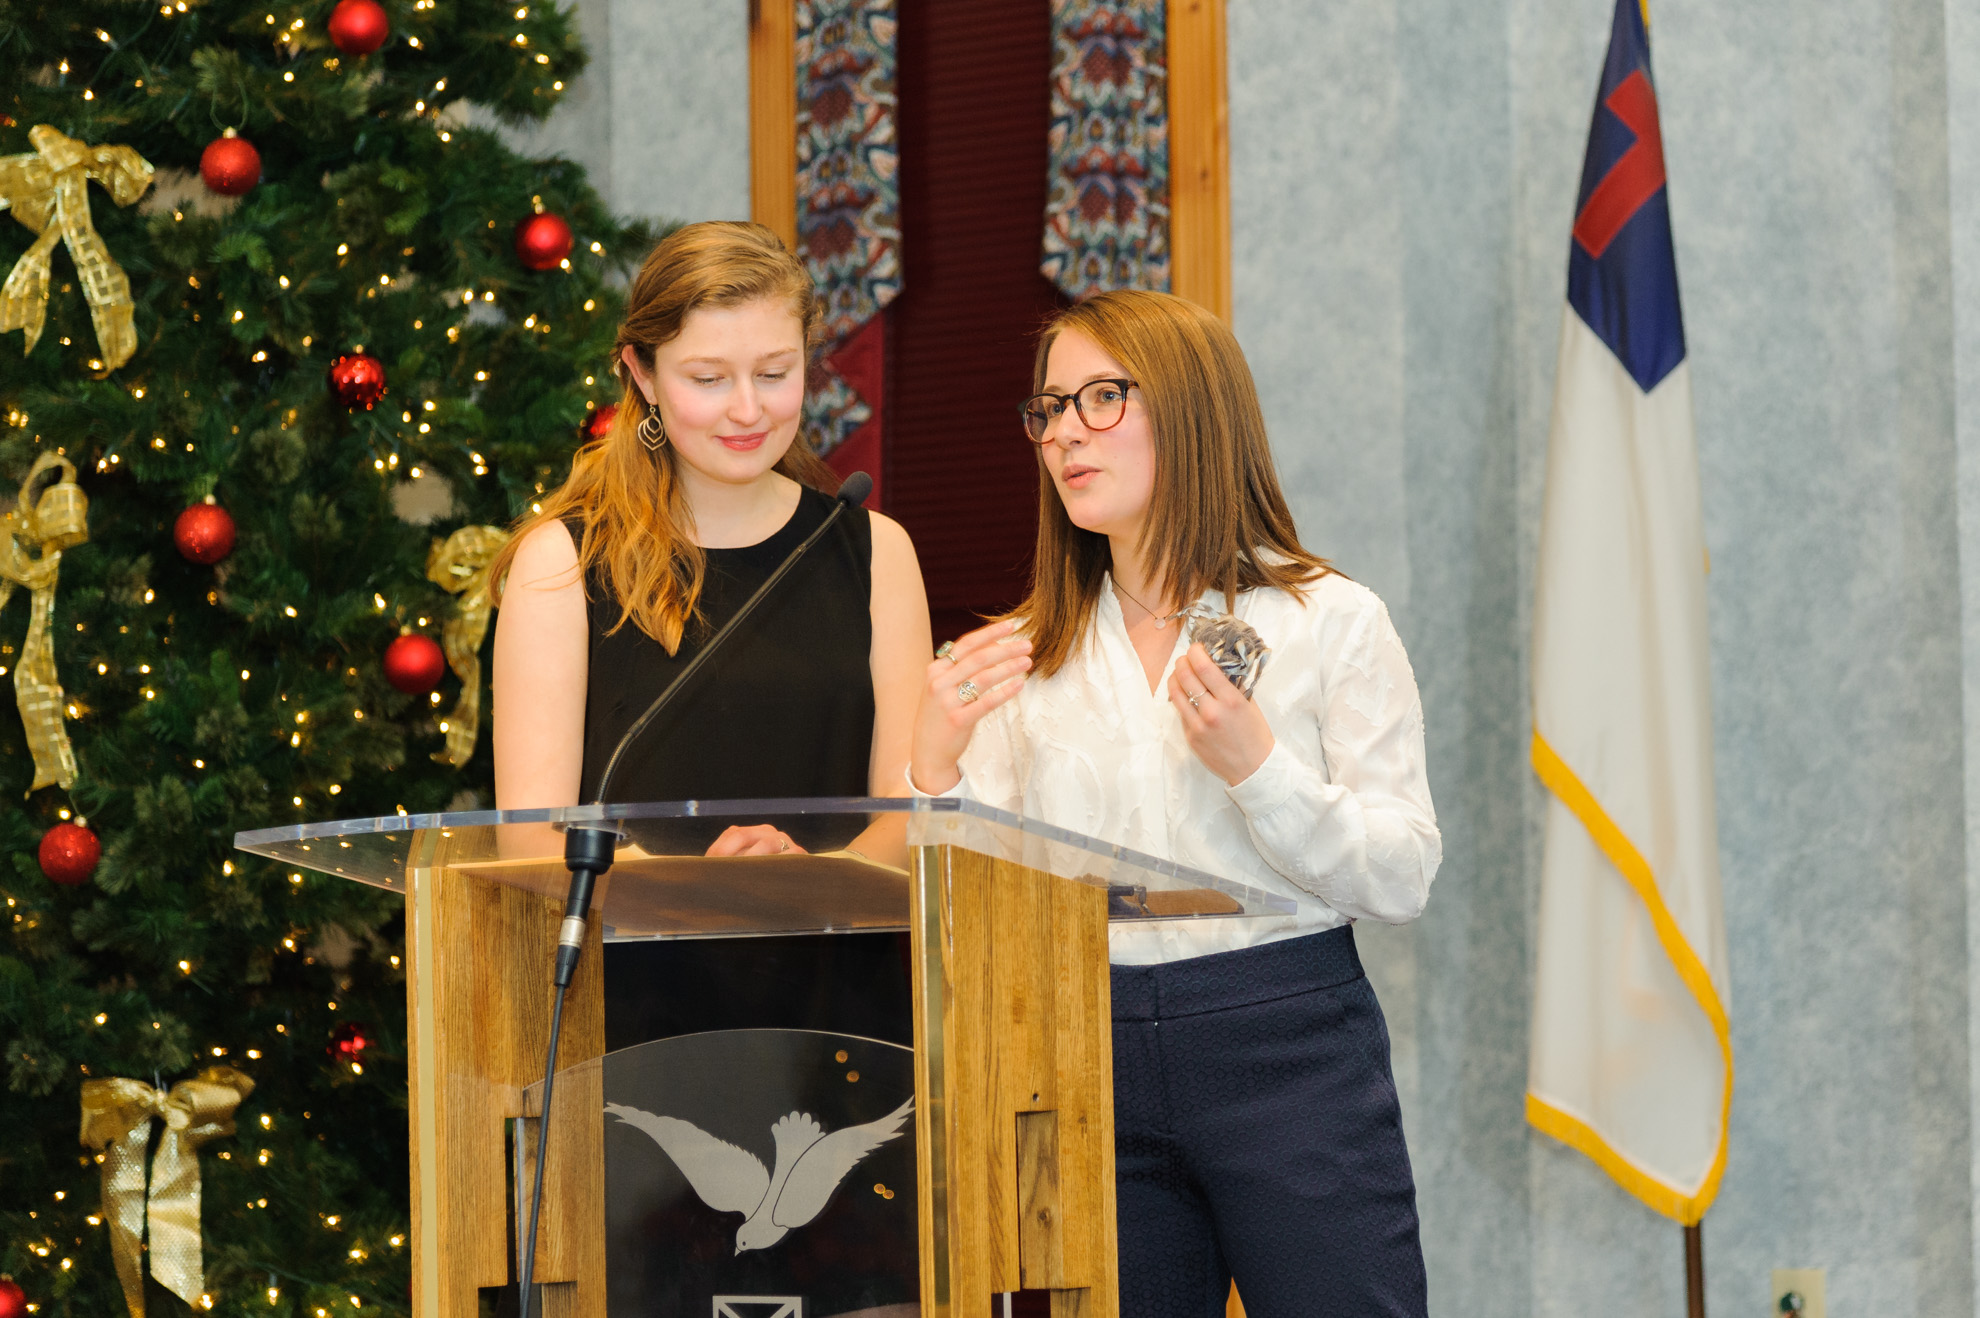 Sophie and Ali as emcees of the 2016 Community Social & Fundraiser held December 22nd at the Red Hook Community Center